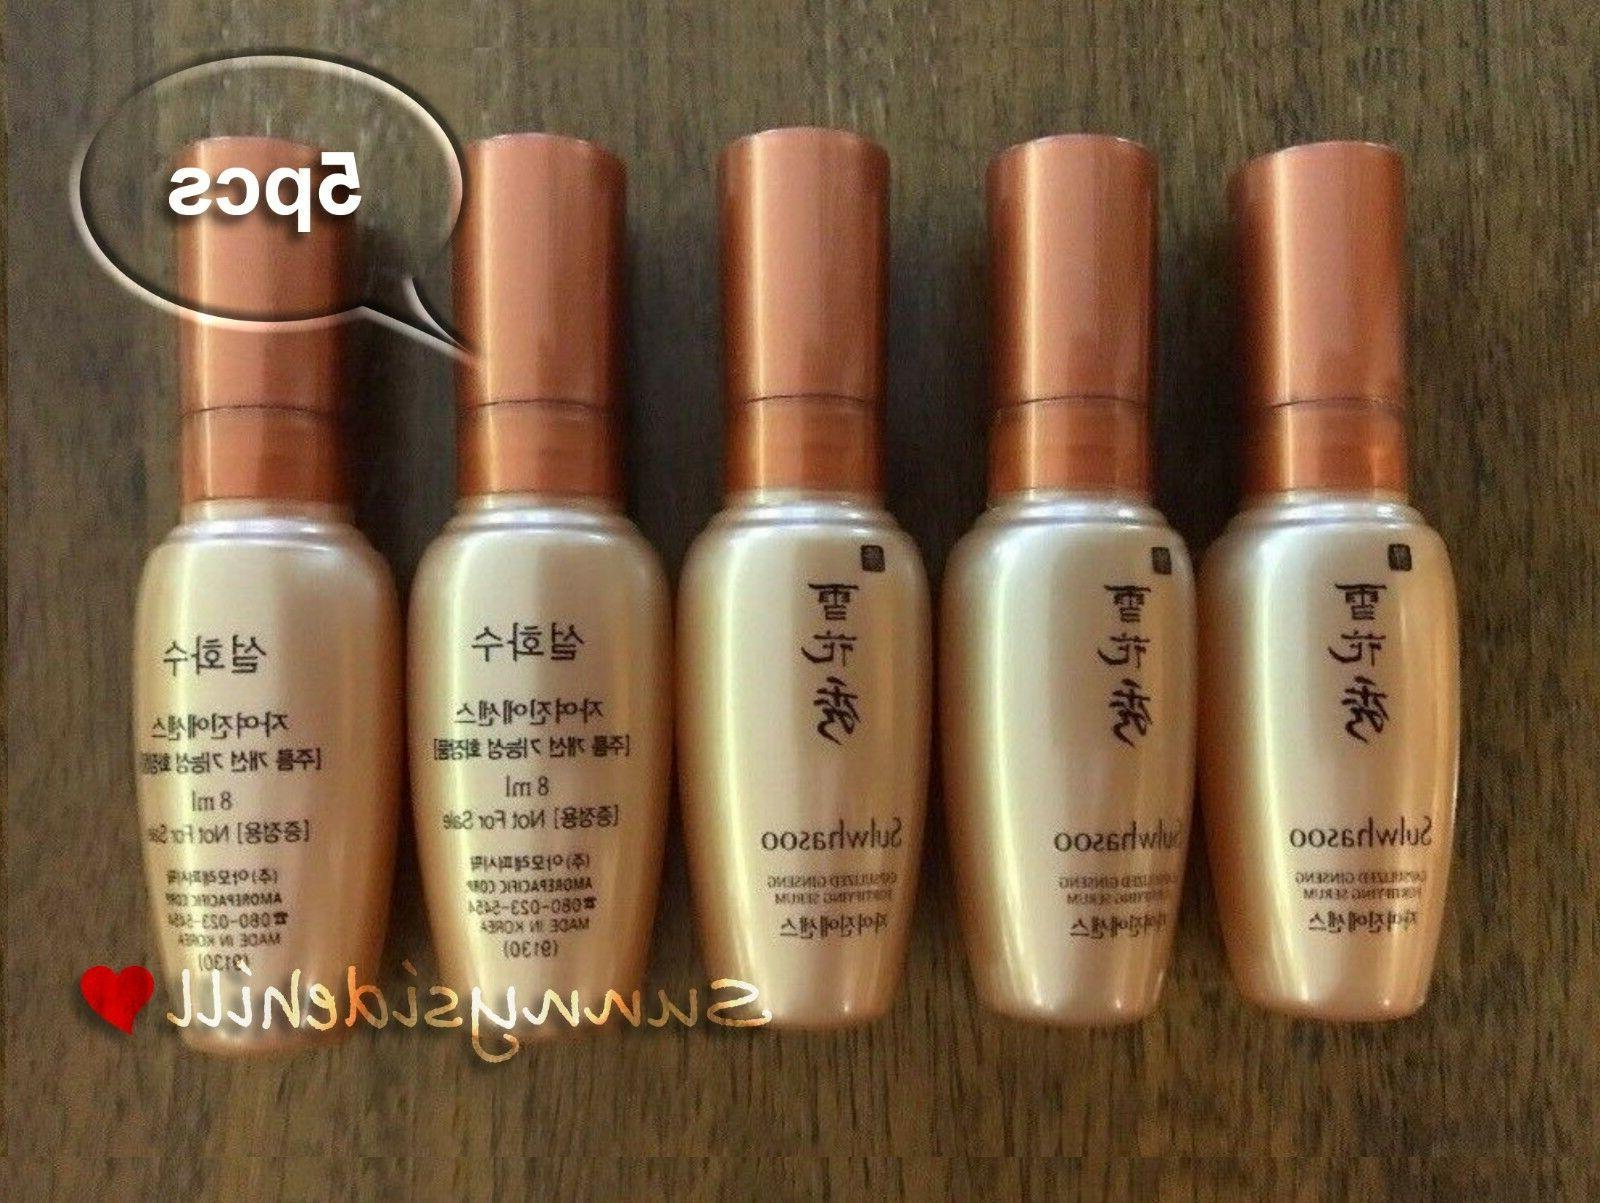 Sulwhasoo Capsulized Ginseng Fortifying Serum 8ml x 5pcs  US